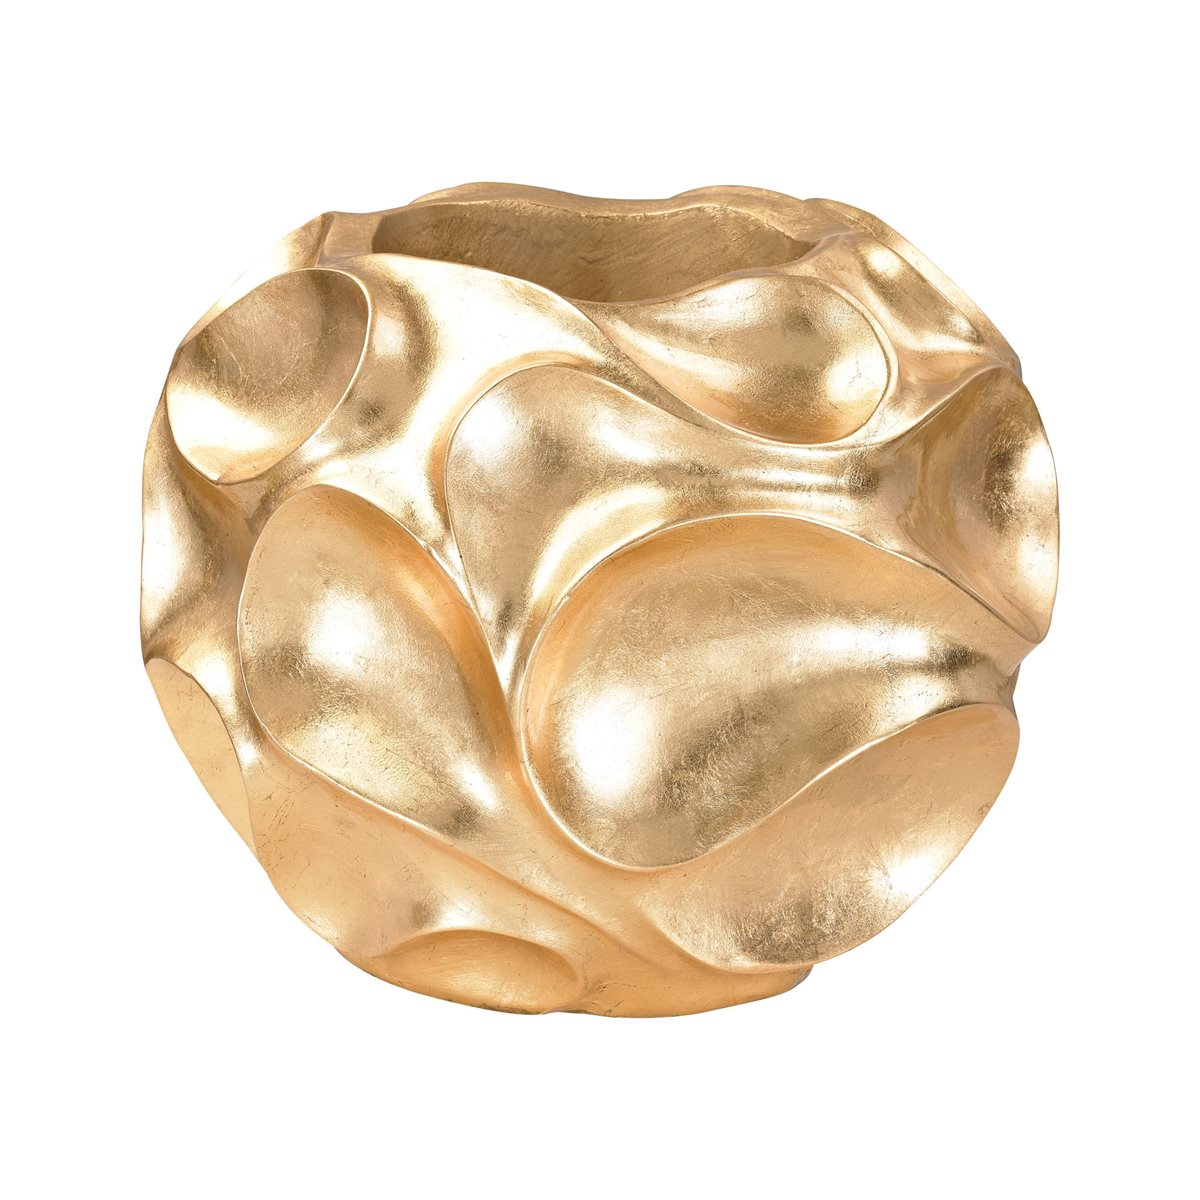 GOLD LEAF WAVE BOWL